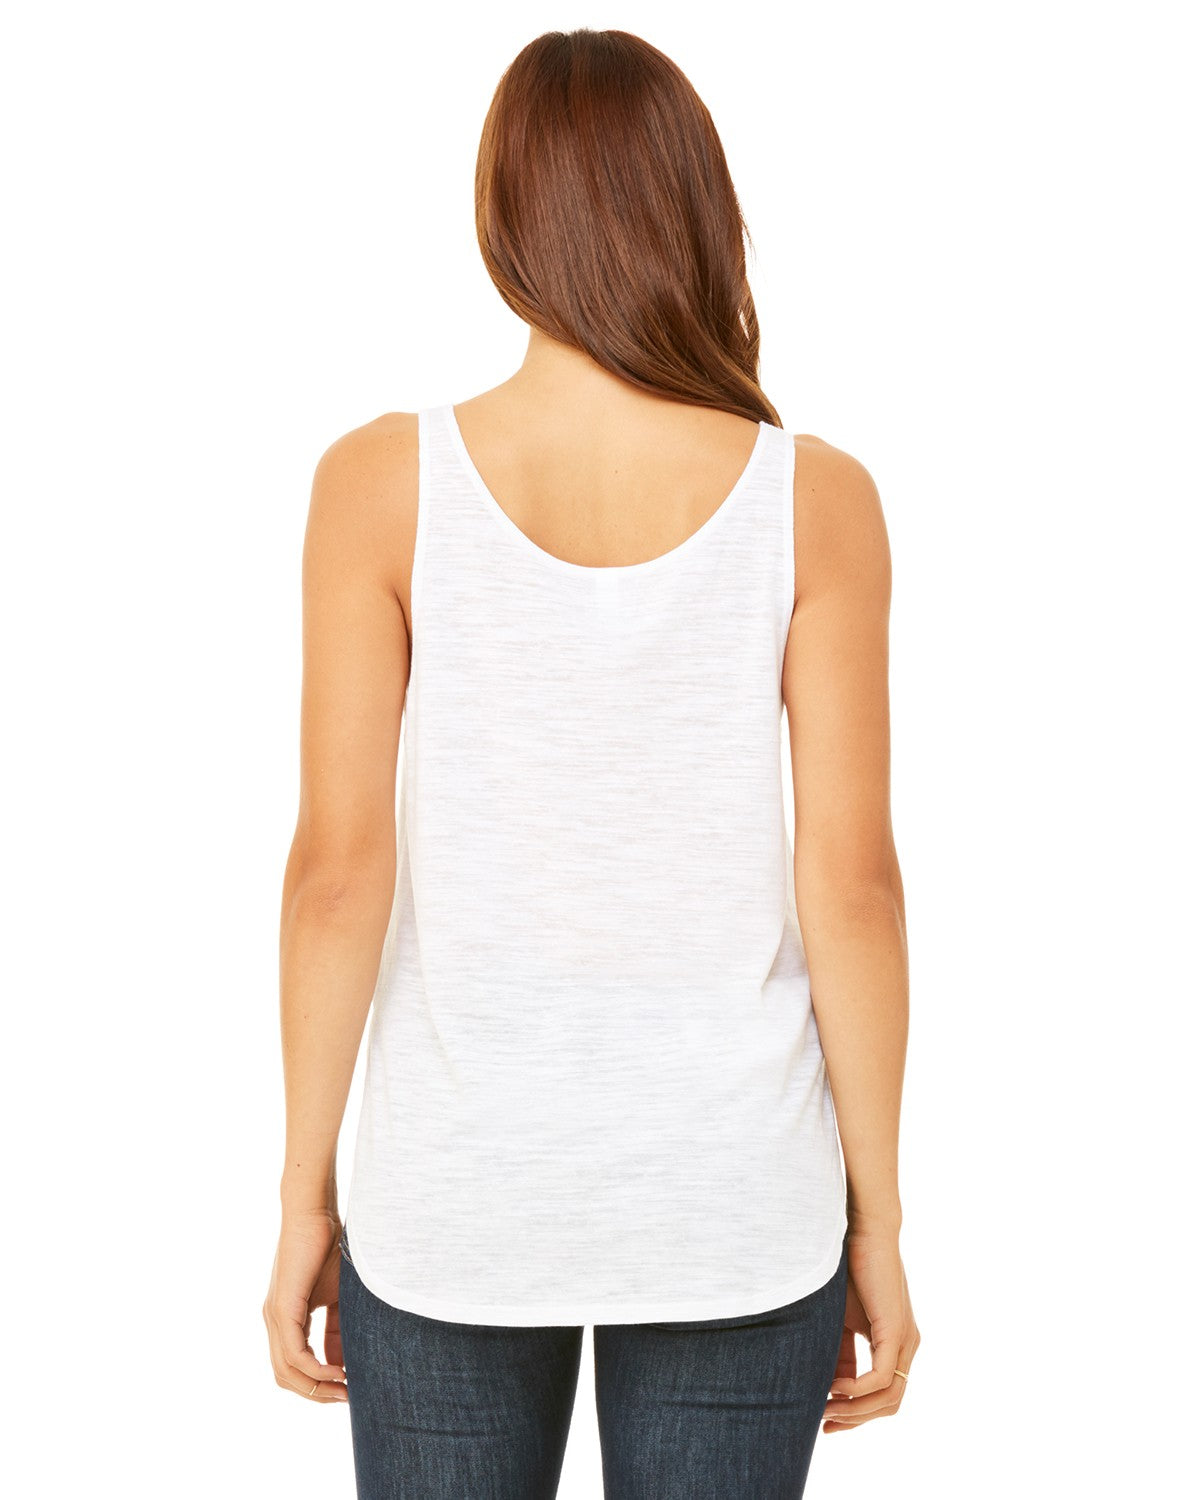 HOPE Blueberry Women's Premium Side Split Flowy Tank